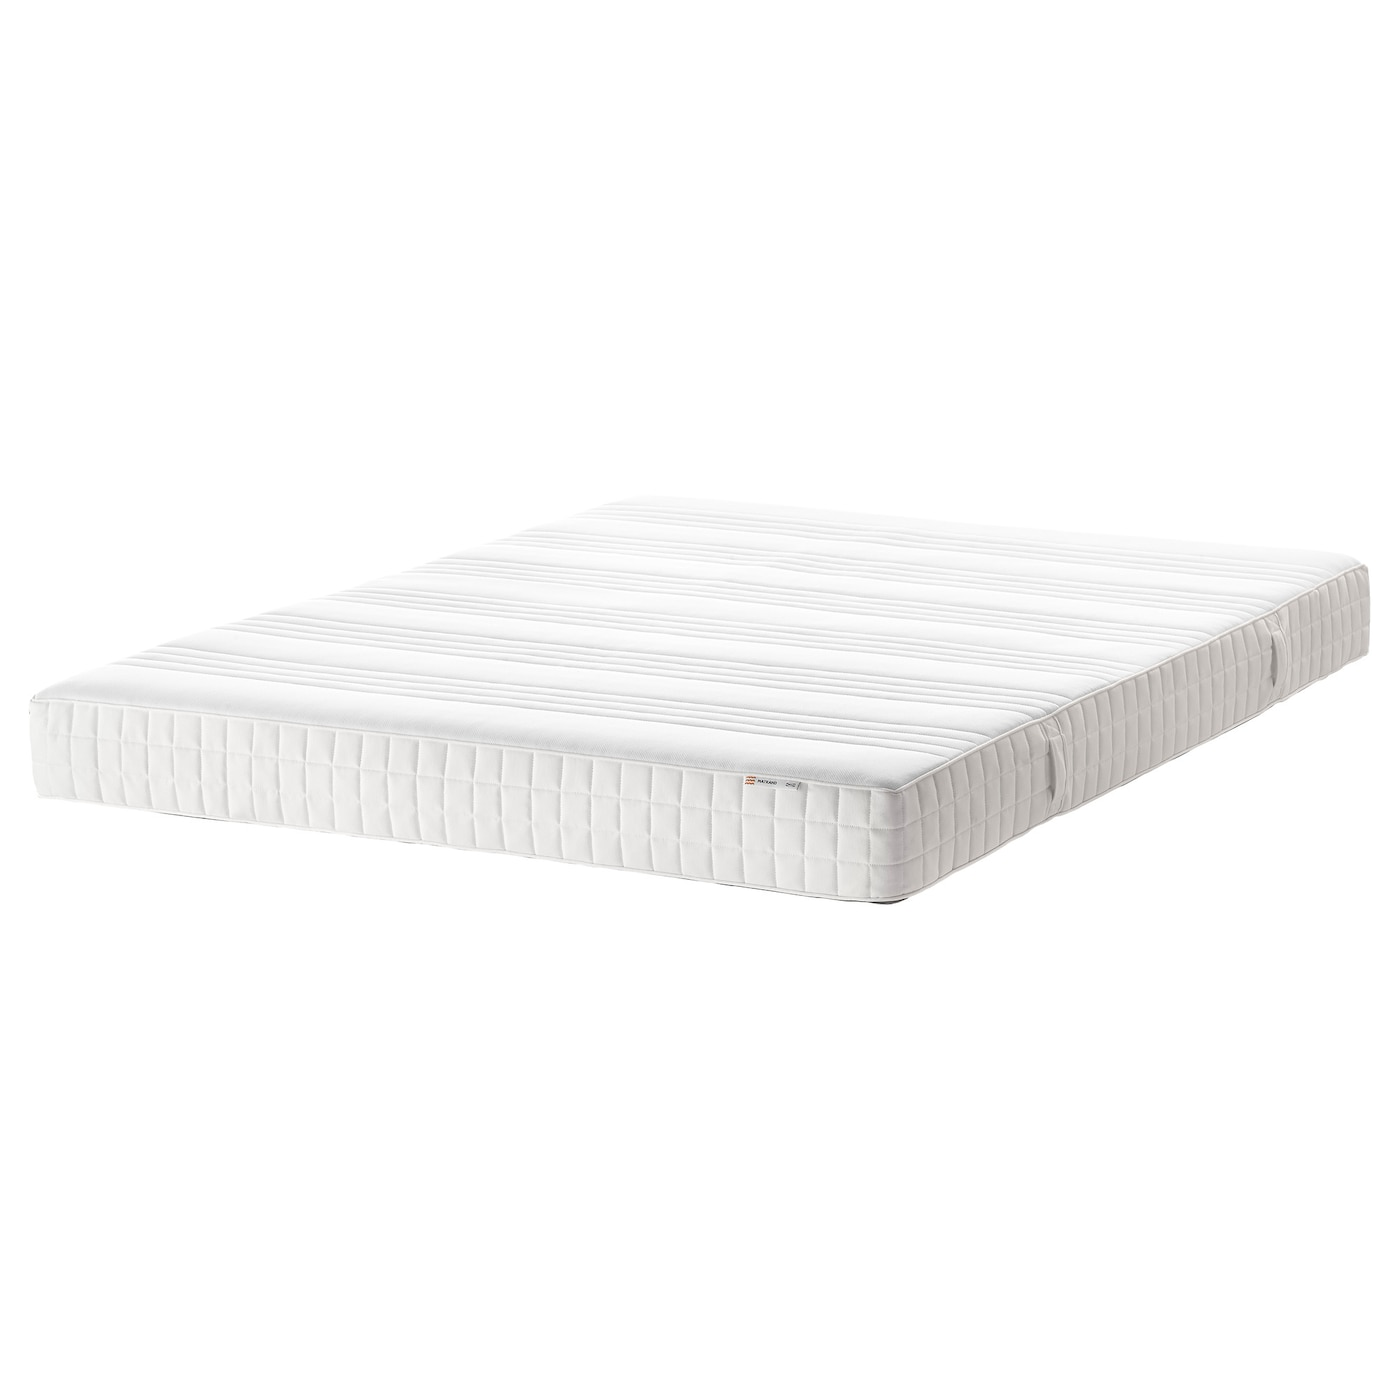 matrand matelas latex mi ferme blanc 160 x 200 cm ikea. Black Bedroom Furniture Sets. Home Design Ideas